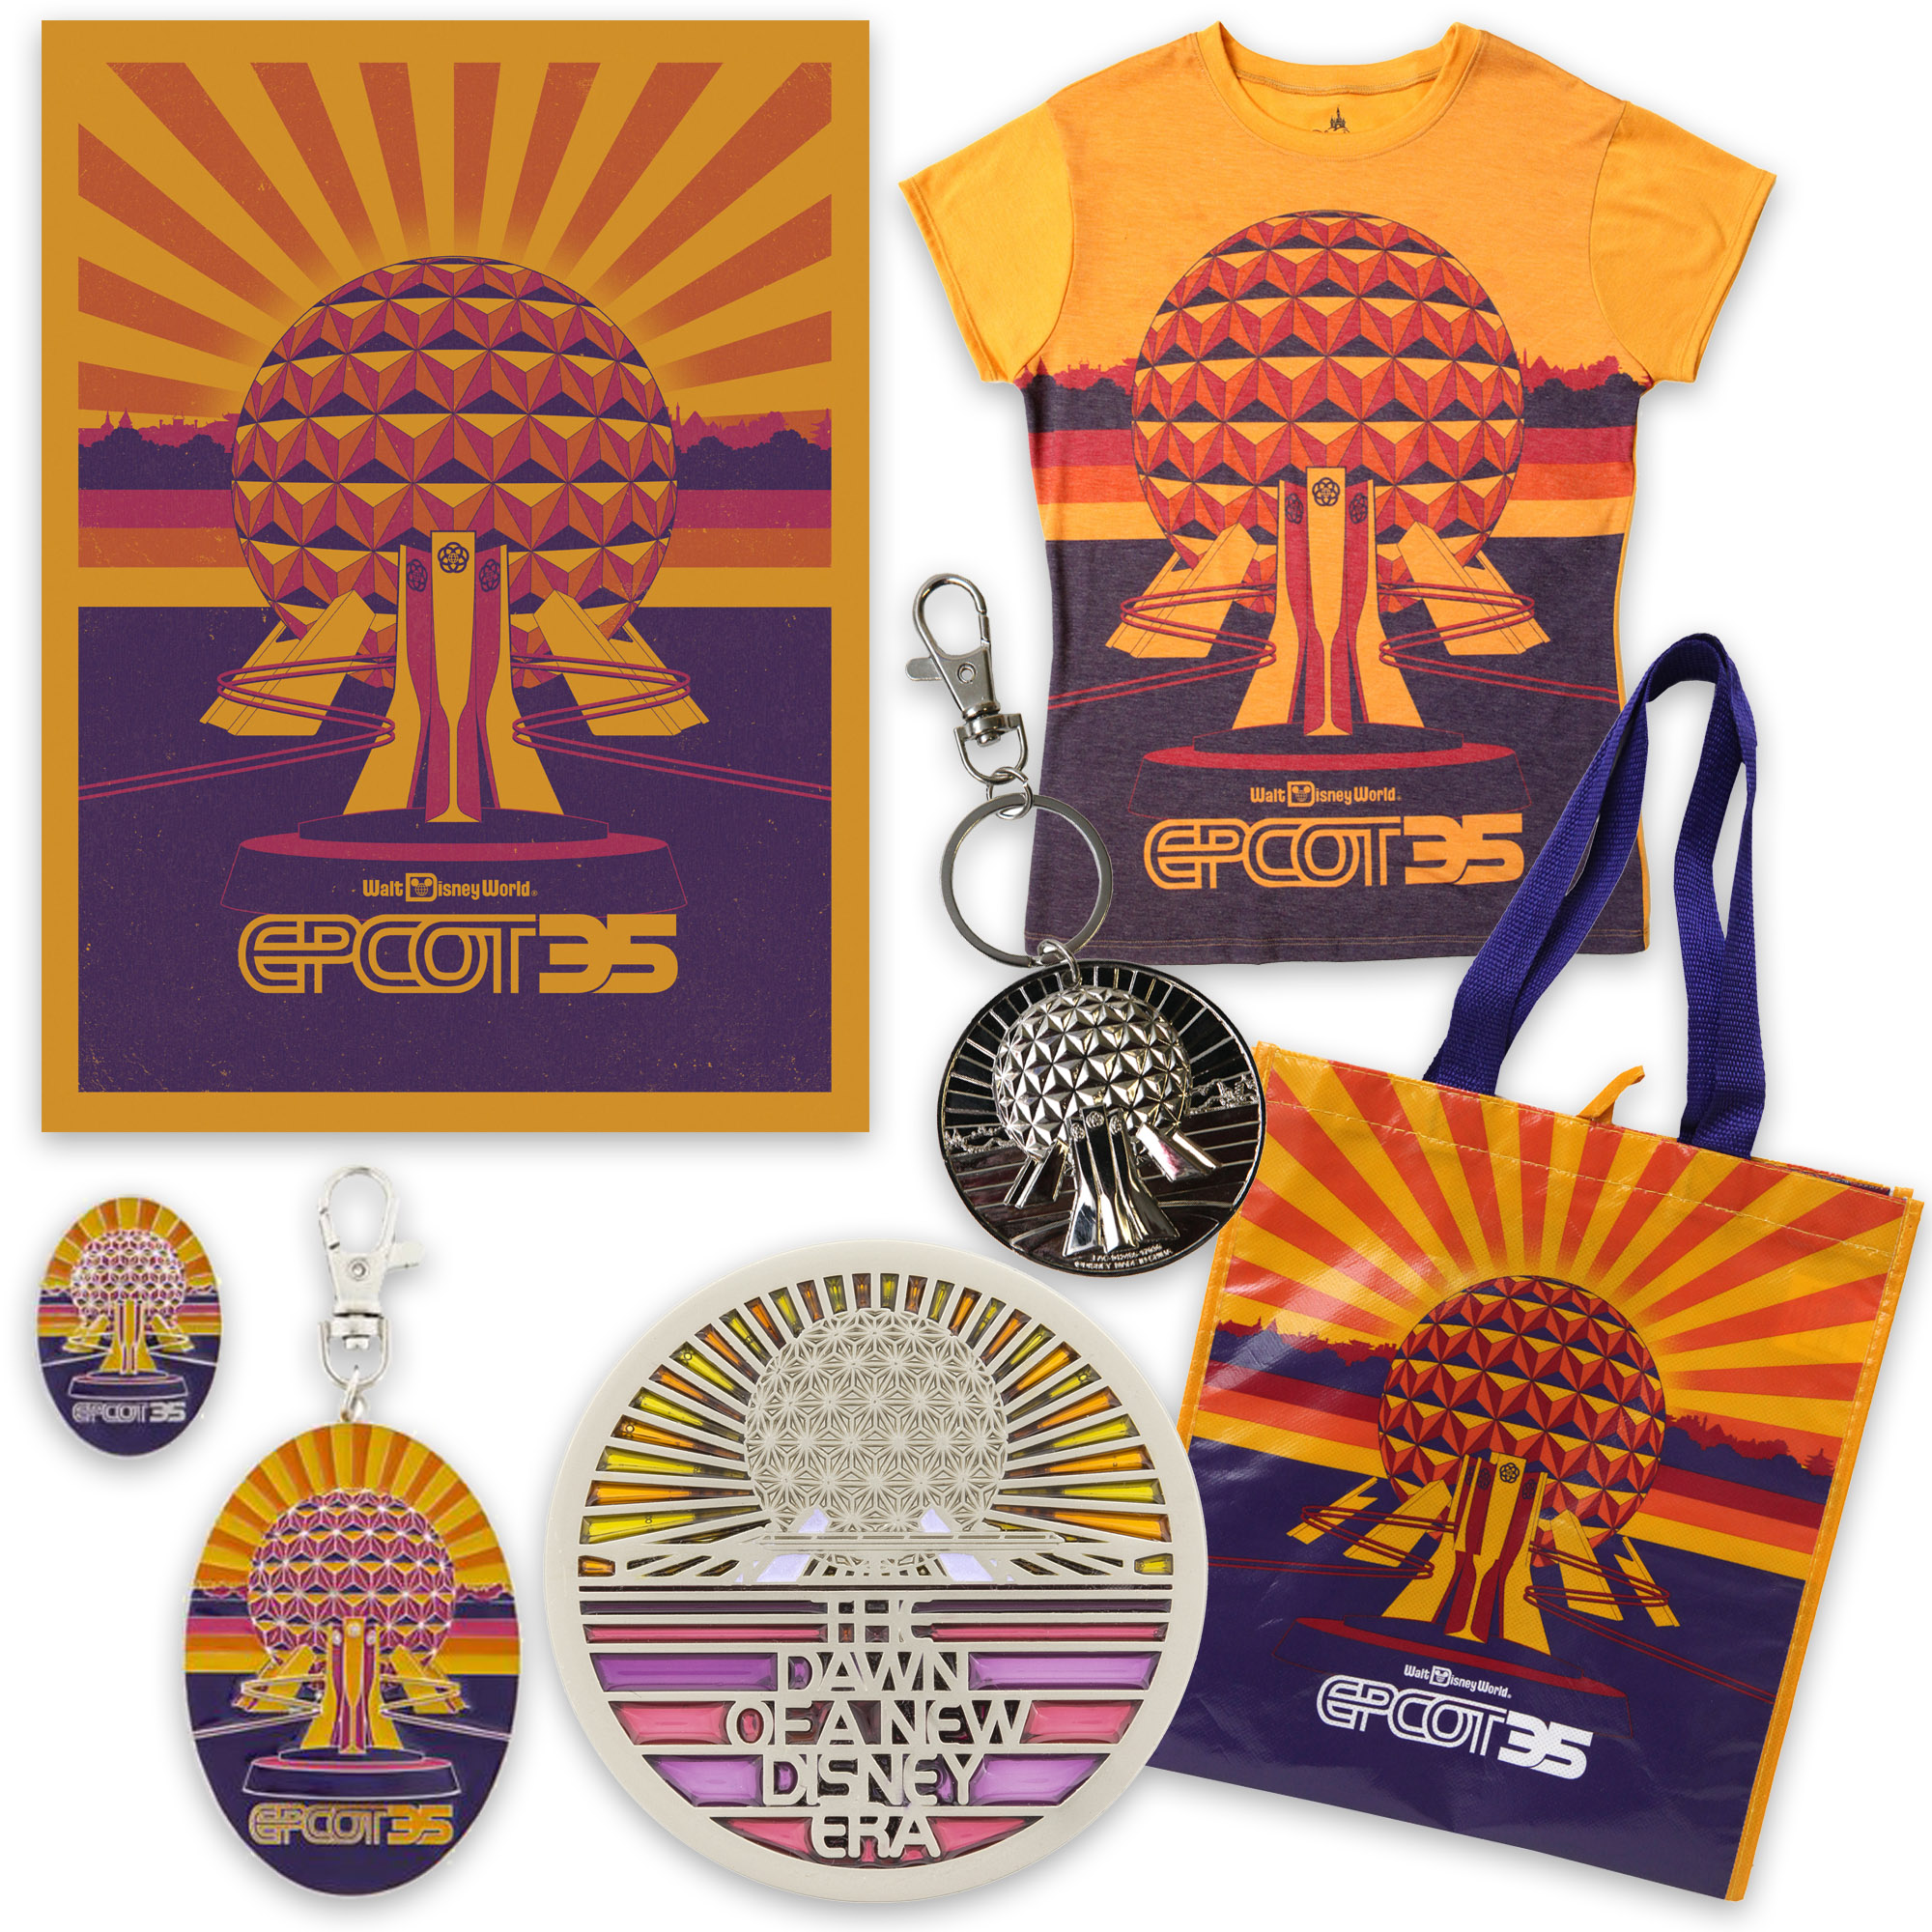 Begin to Dream with Retro-Inspired Merchandise for 35th Anniversary of Epcot This Fall